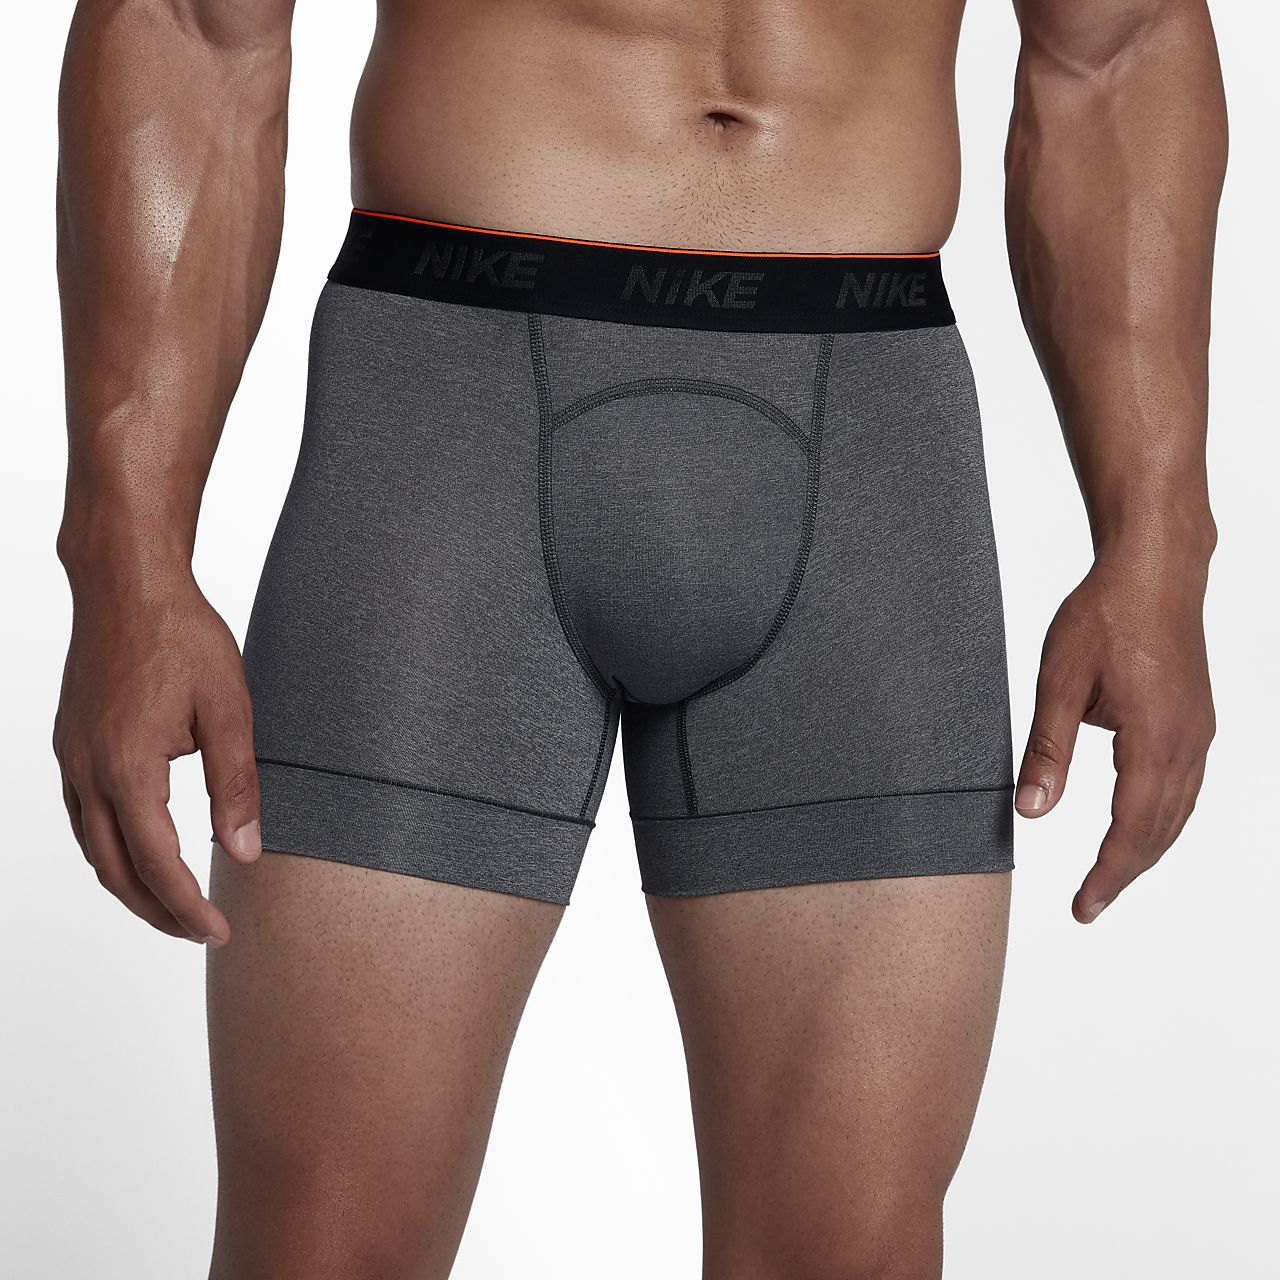 reputable site a64ac 0631f Nike Men s Underwear (2 Pairs). Nike.com GB